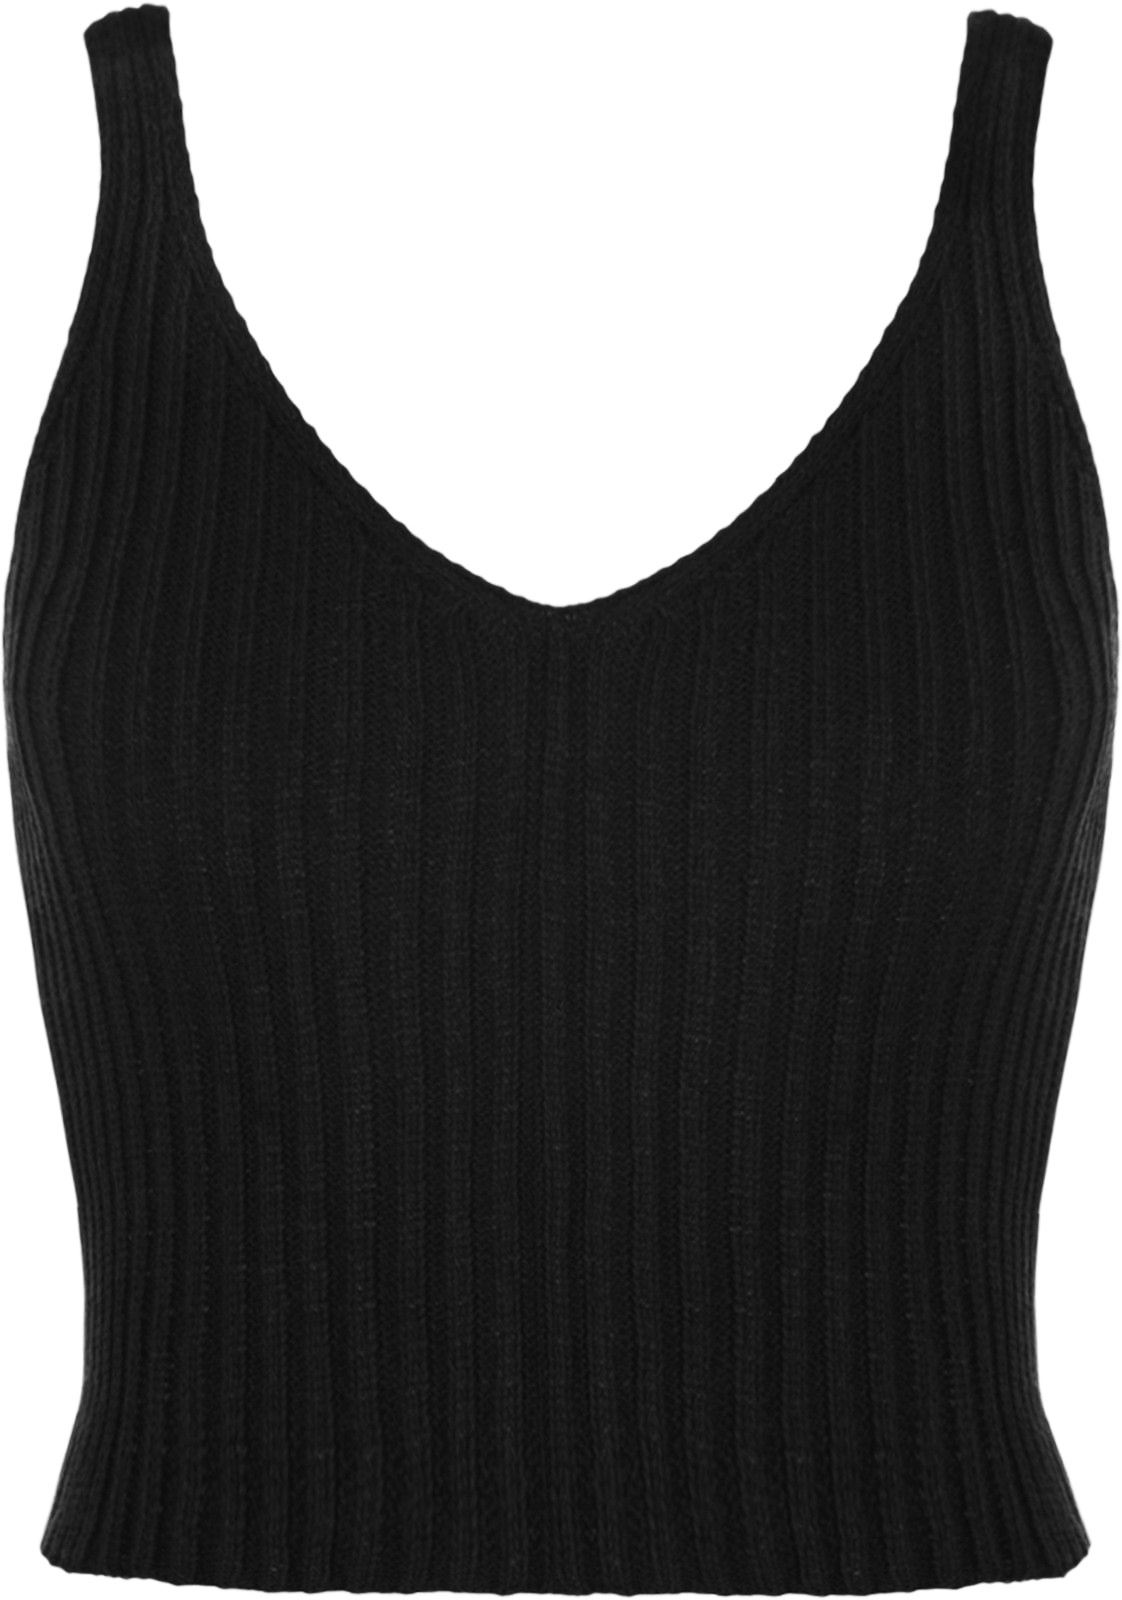 602340fb6a0 New Women Ladies V Neck Knitted Ribbed Plain Bralet Crop Top Sleeveless Vest  Top